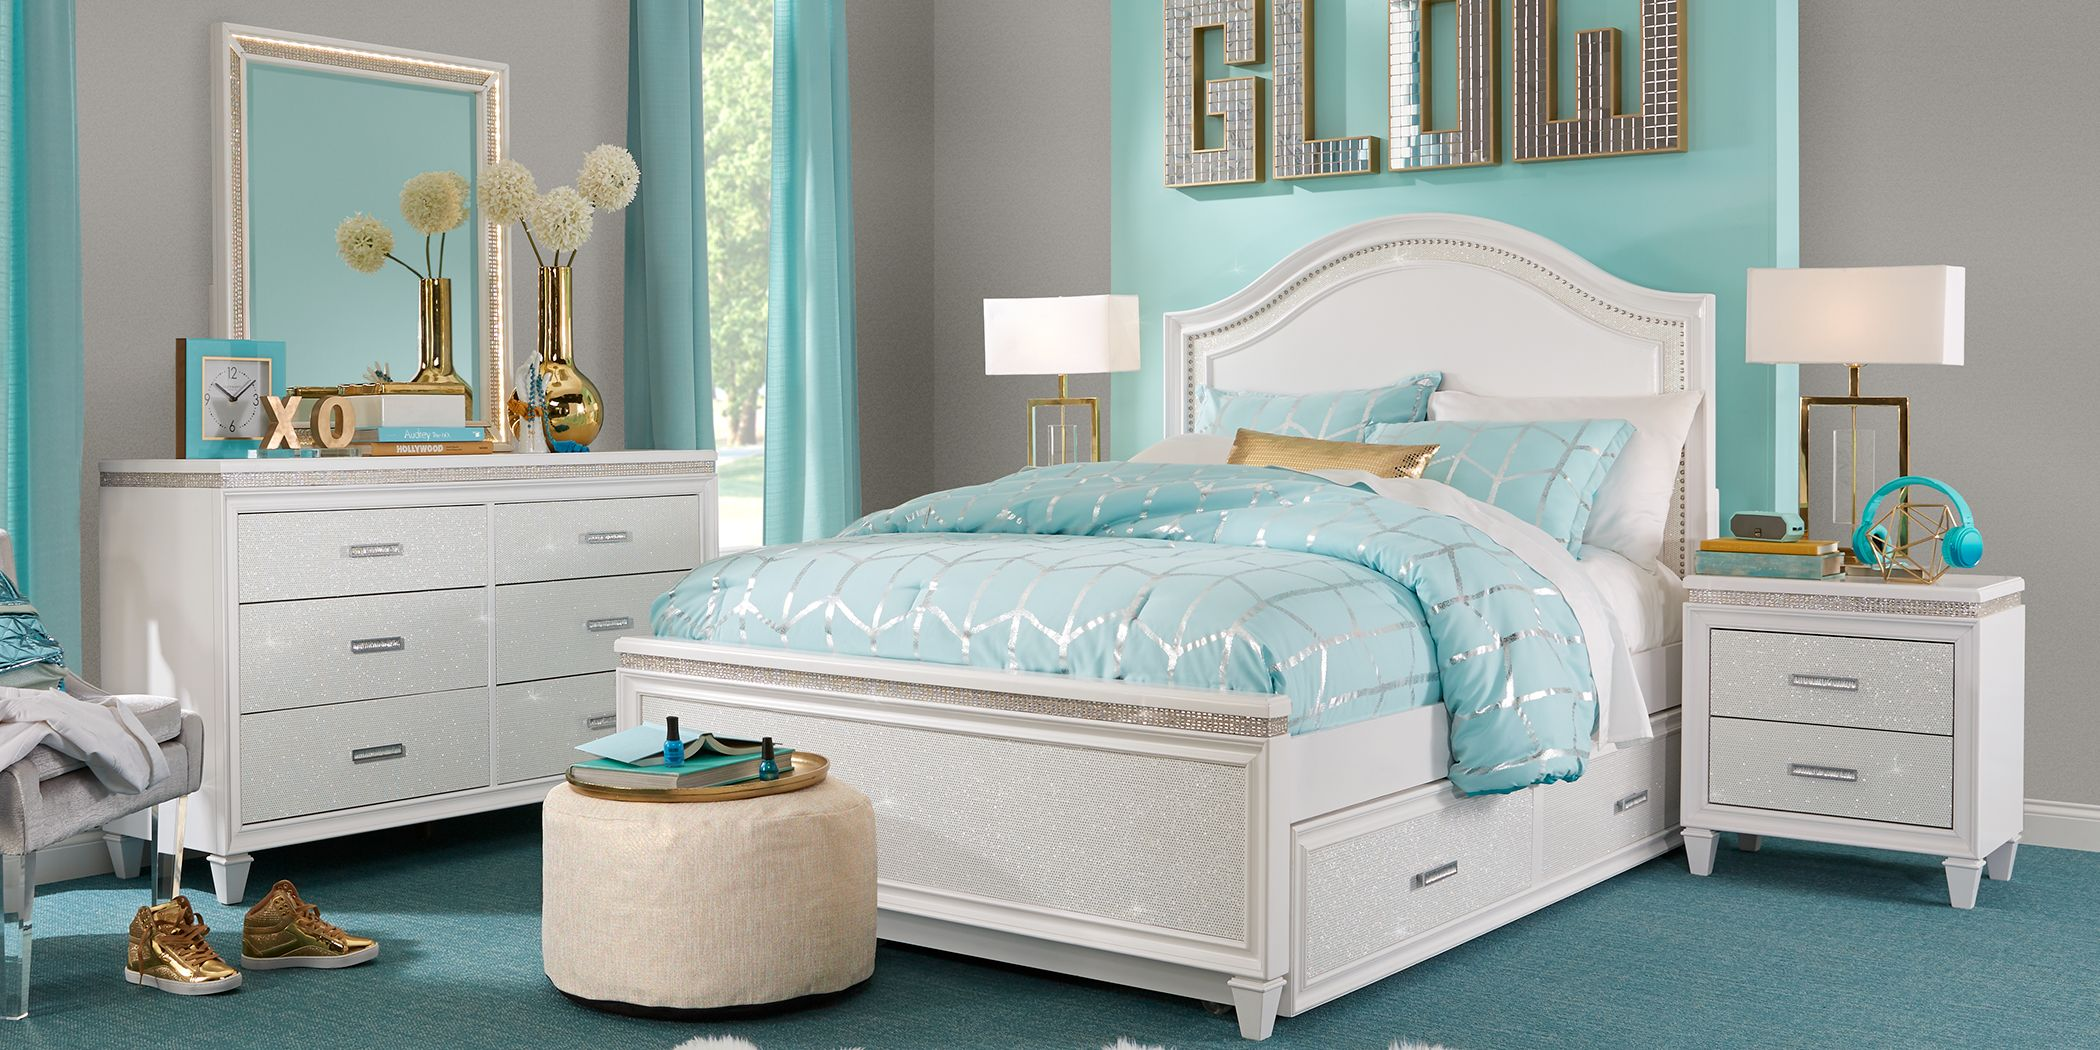 5 Piece Bedroom Sets Shop 5 Pc King Queen Bedroom Sets